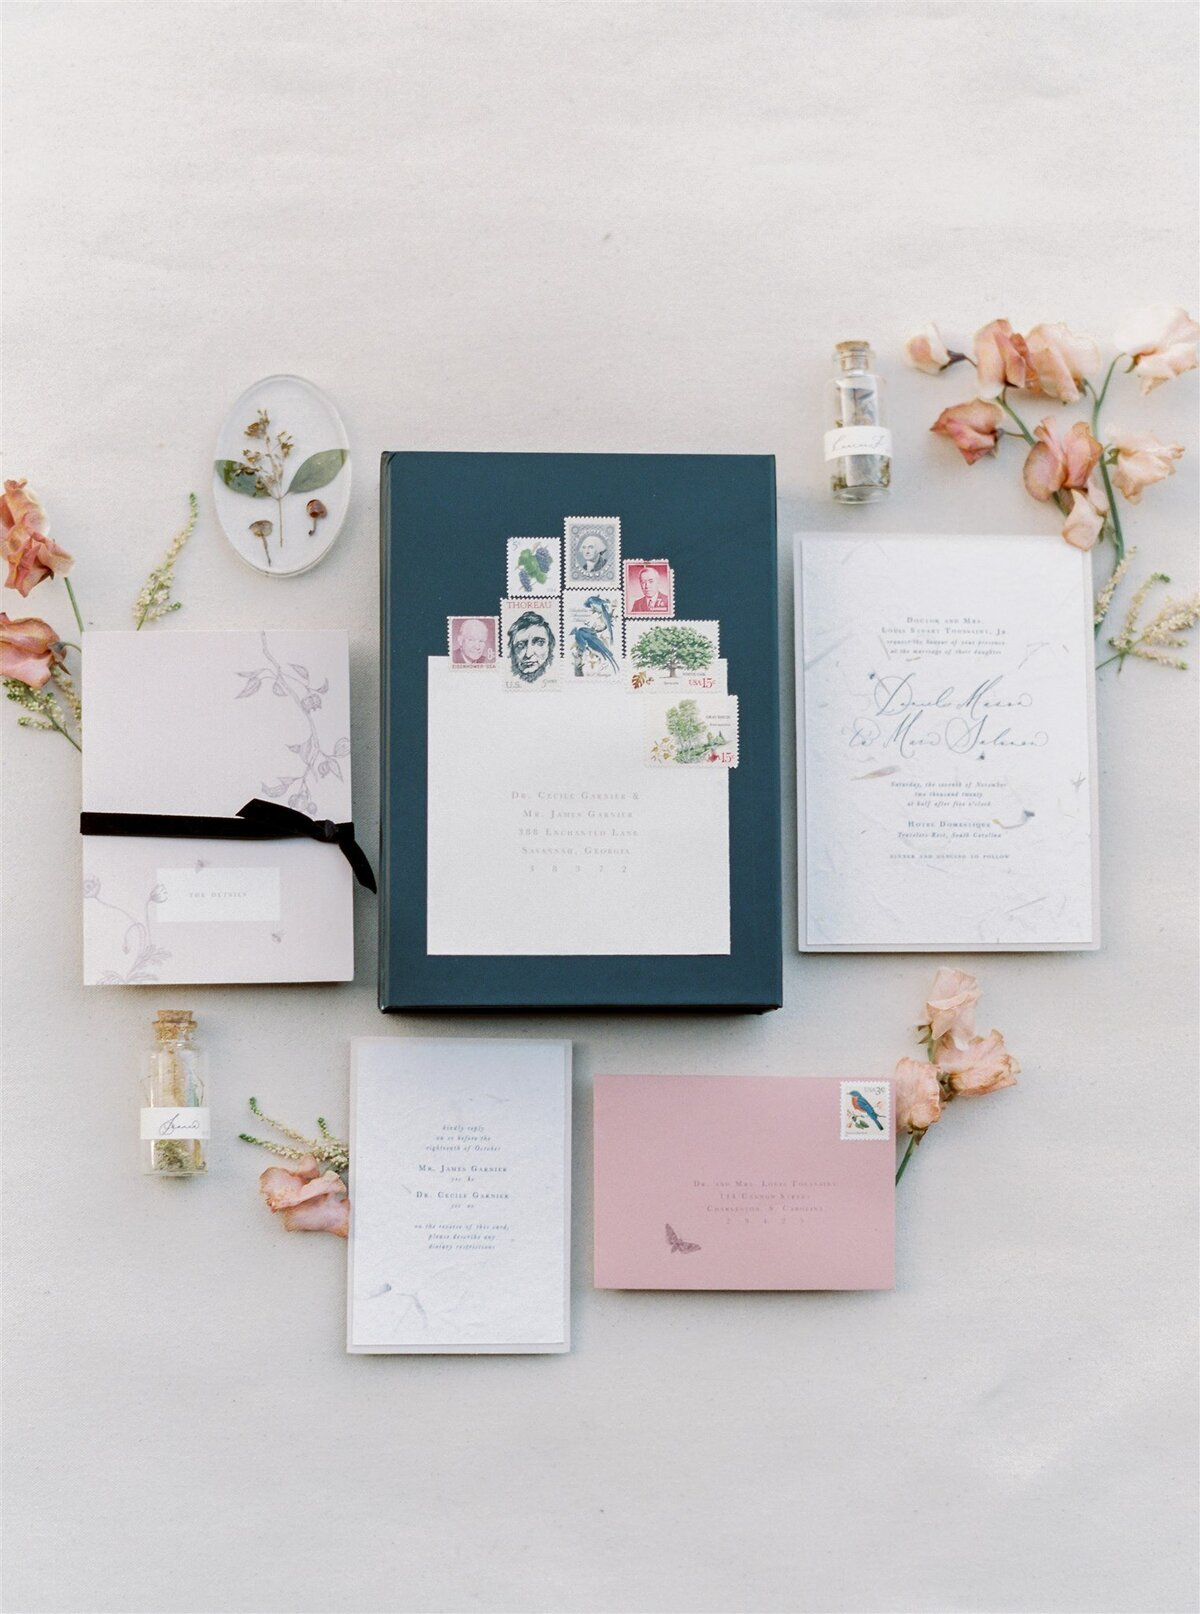 Hotel Domestique Wedding Editorial_Lauren Fair_015